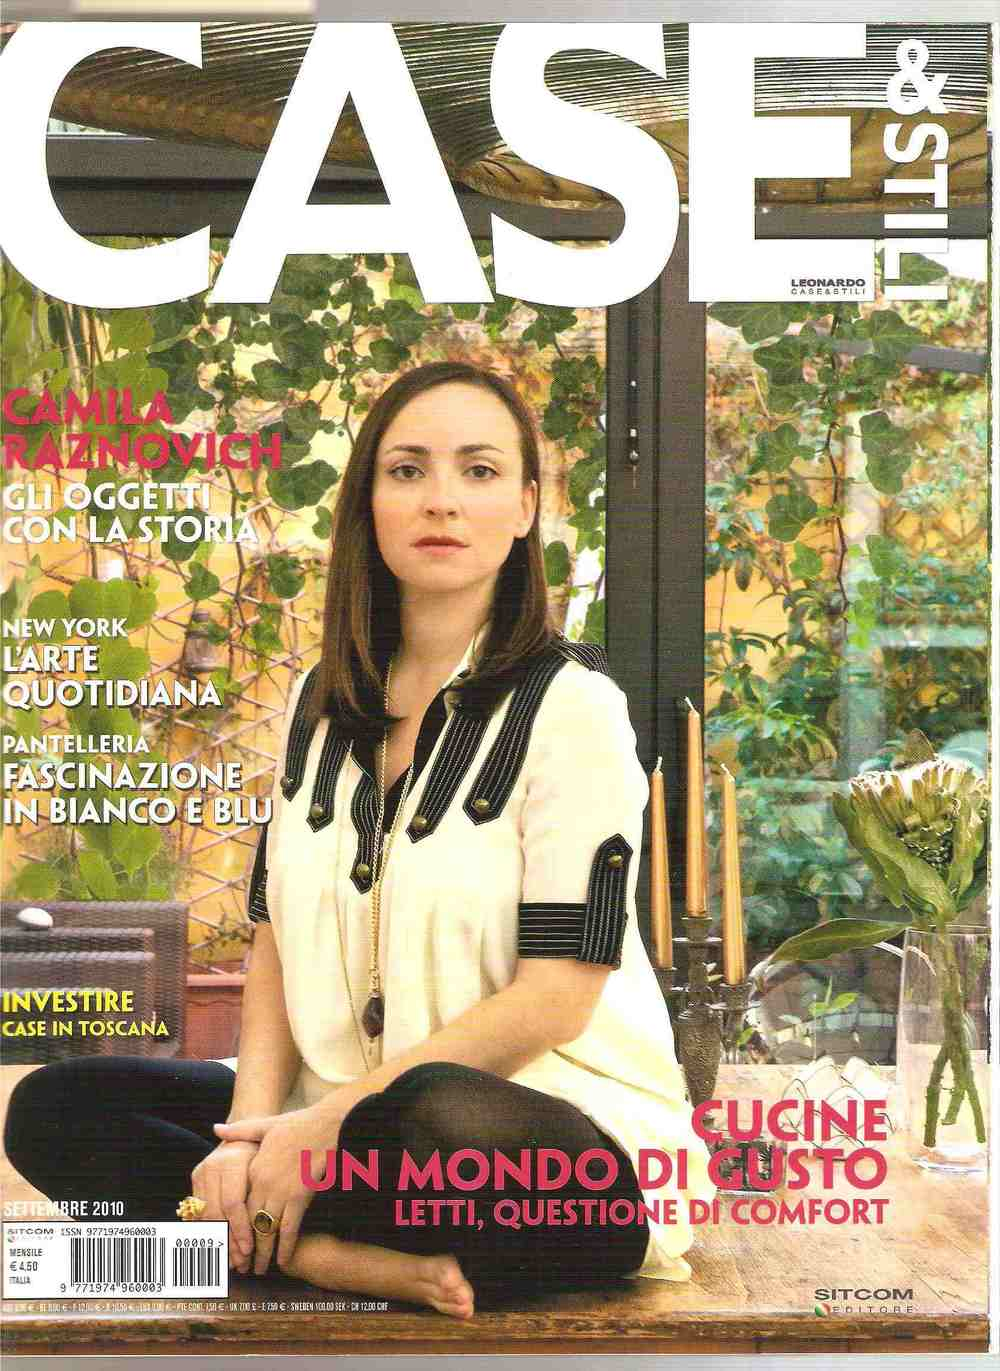 Publication: CASE & STILI, 1 September 2012